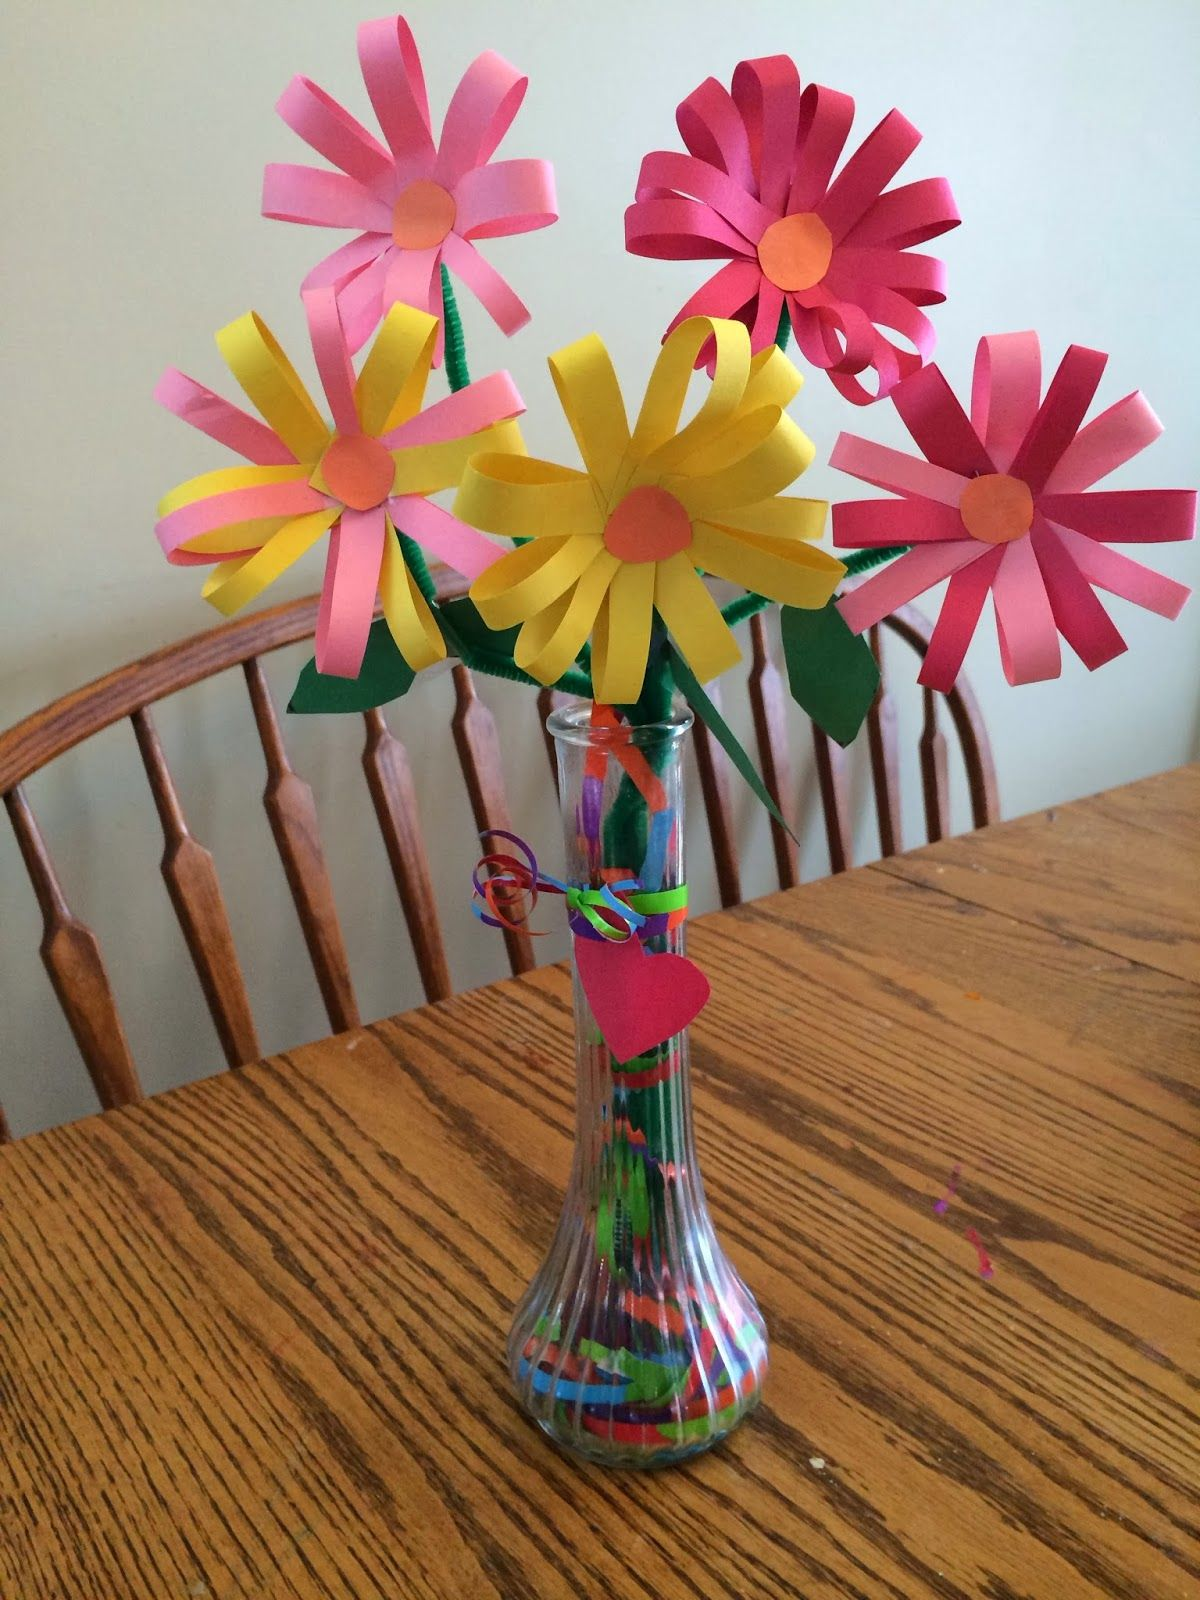 Construction paper flowers vase filled with gift wrap ribbon kid construction paper flowers vase filled with gift wrap ribbon mightylinksfo